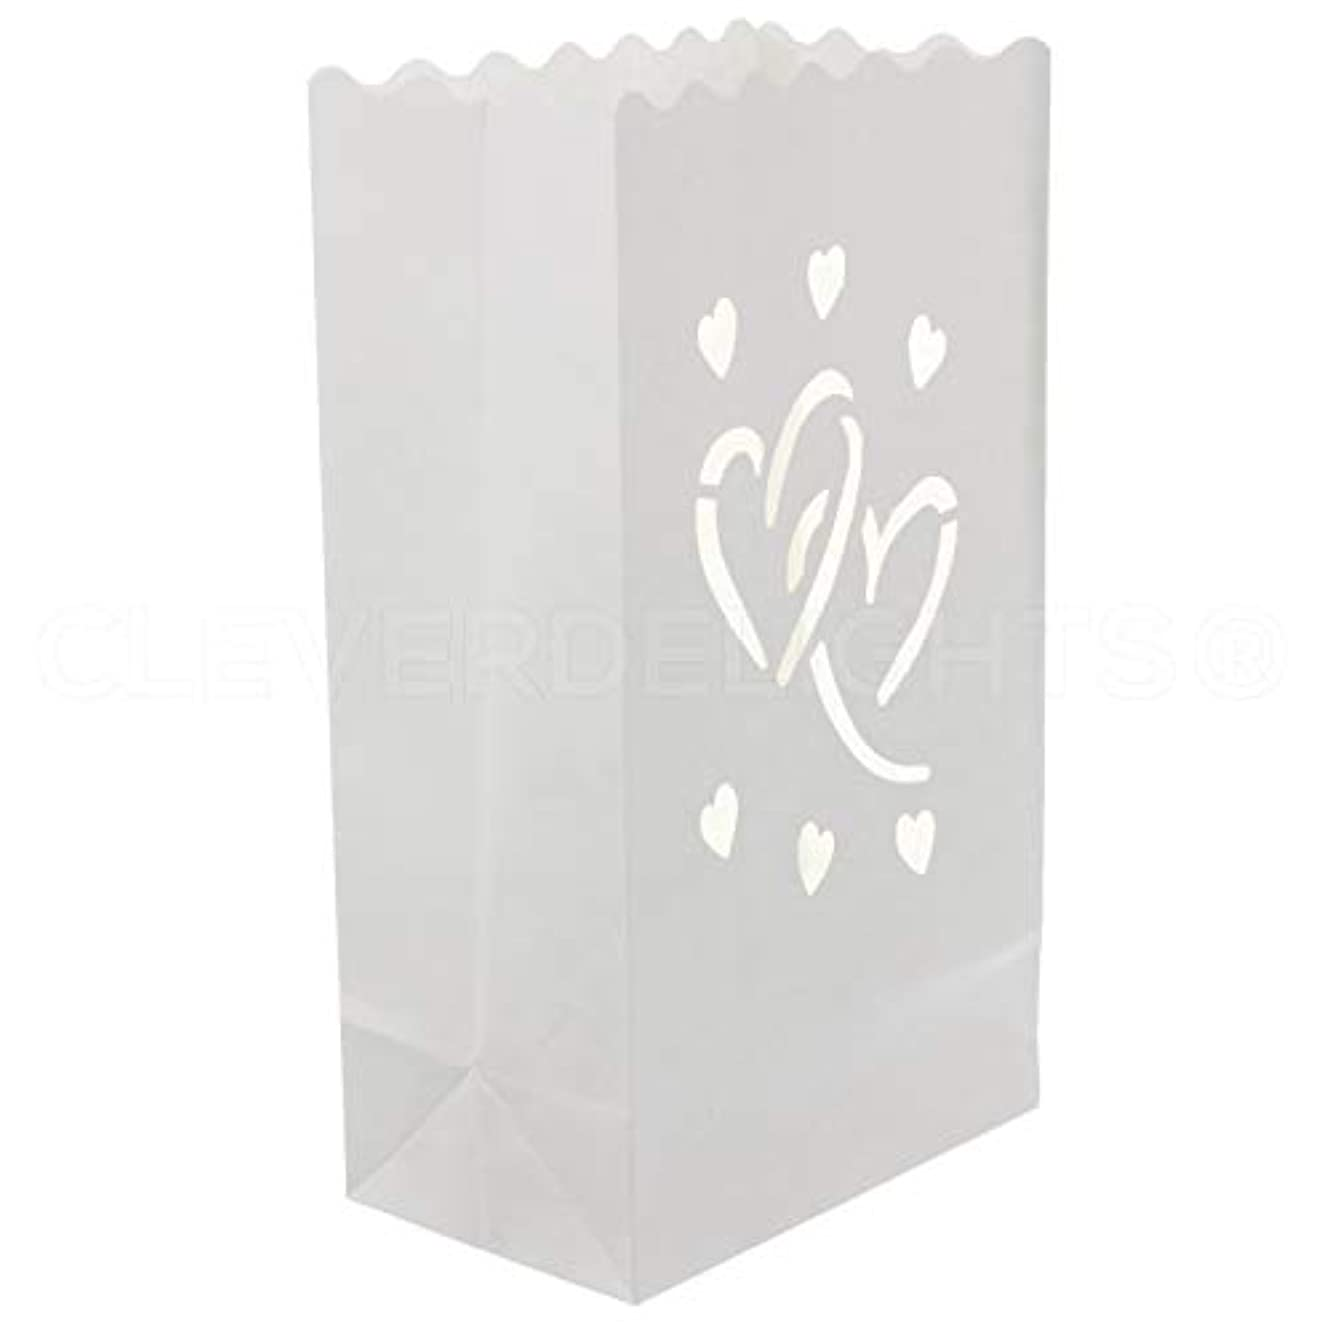 CleverDelights White Luminary Bags - 20 Count - Interlocking Hearts Design - Wedding, Reception, Party and Event Decor - Flame Resistant Paper - Luminaria